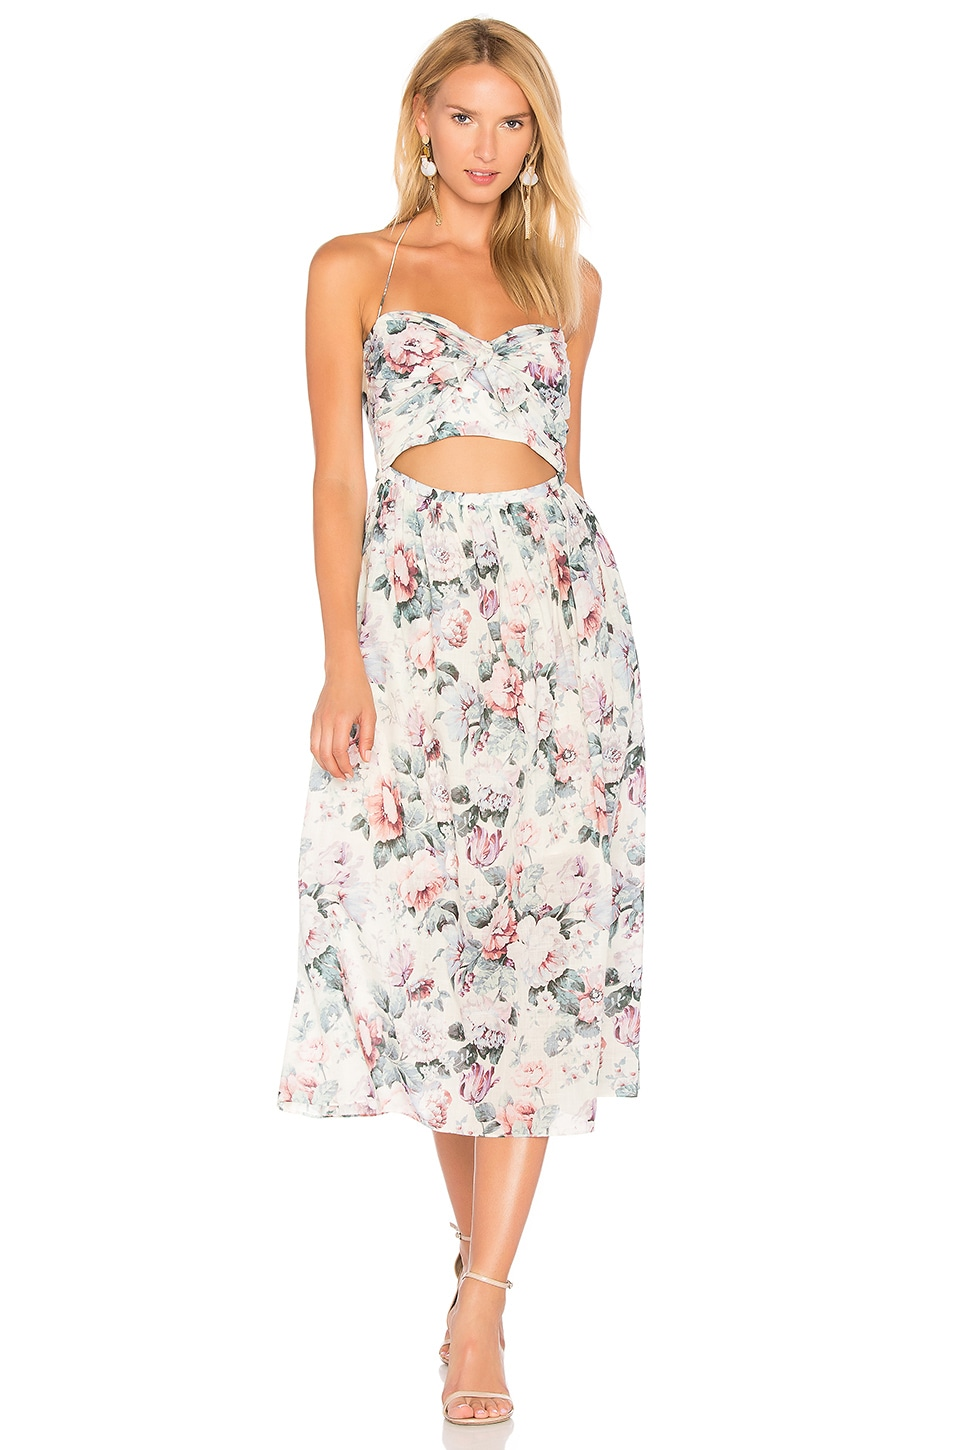 Zimmermann Jasper Tie Dress in Floral